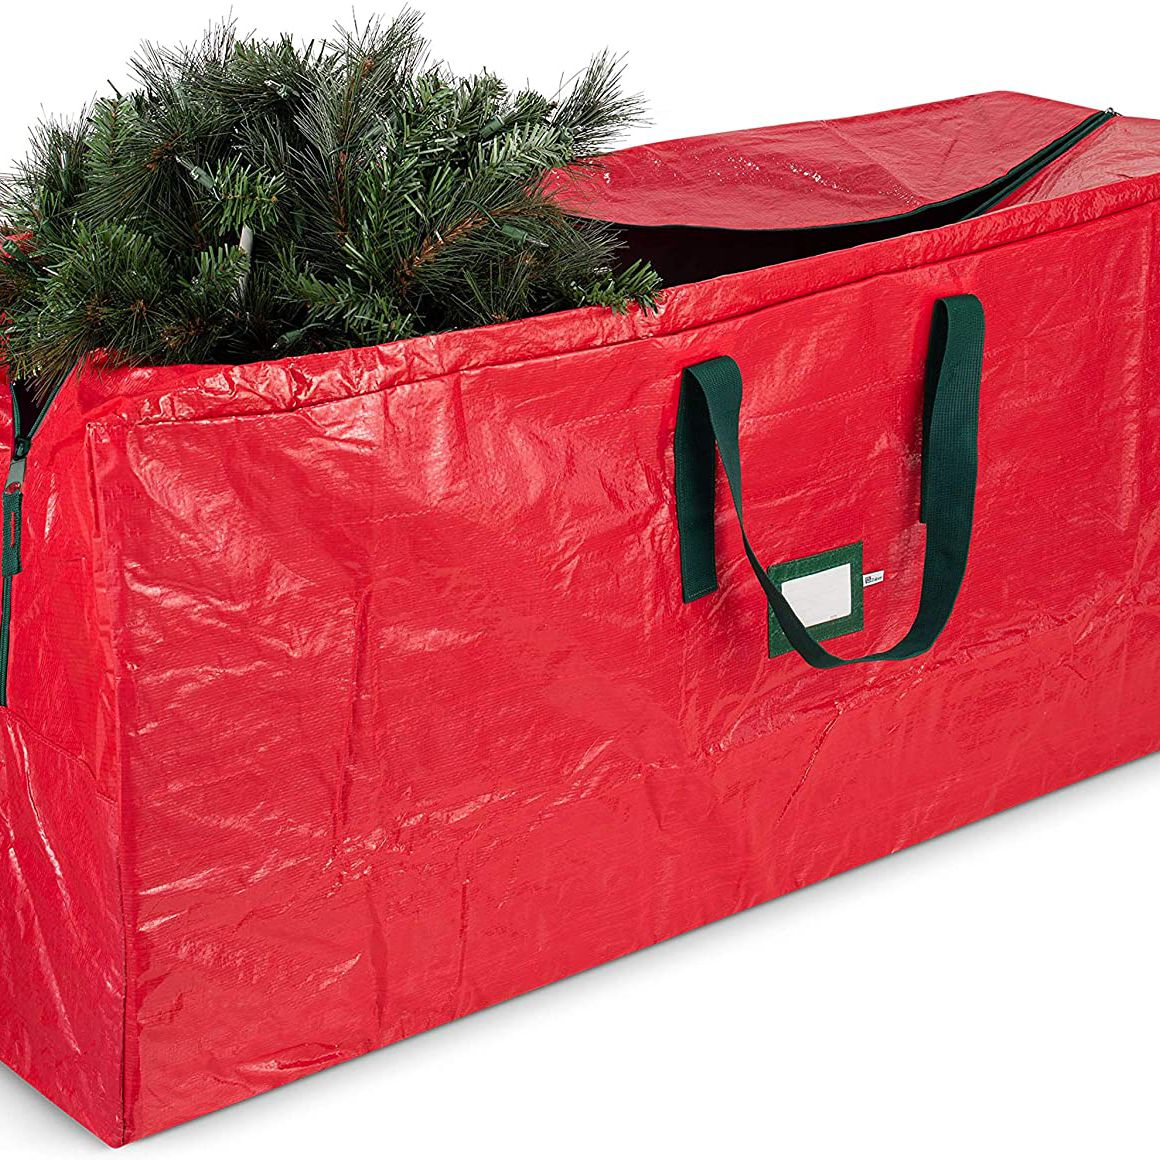 The 6 Best Christmas Tree Bags Of 2021